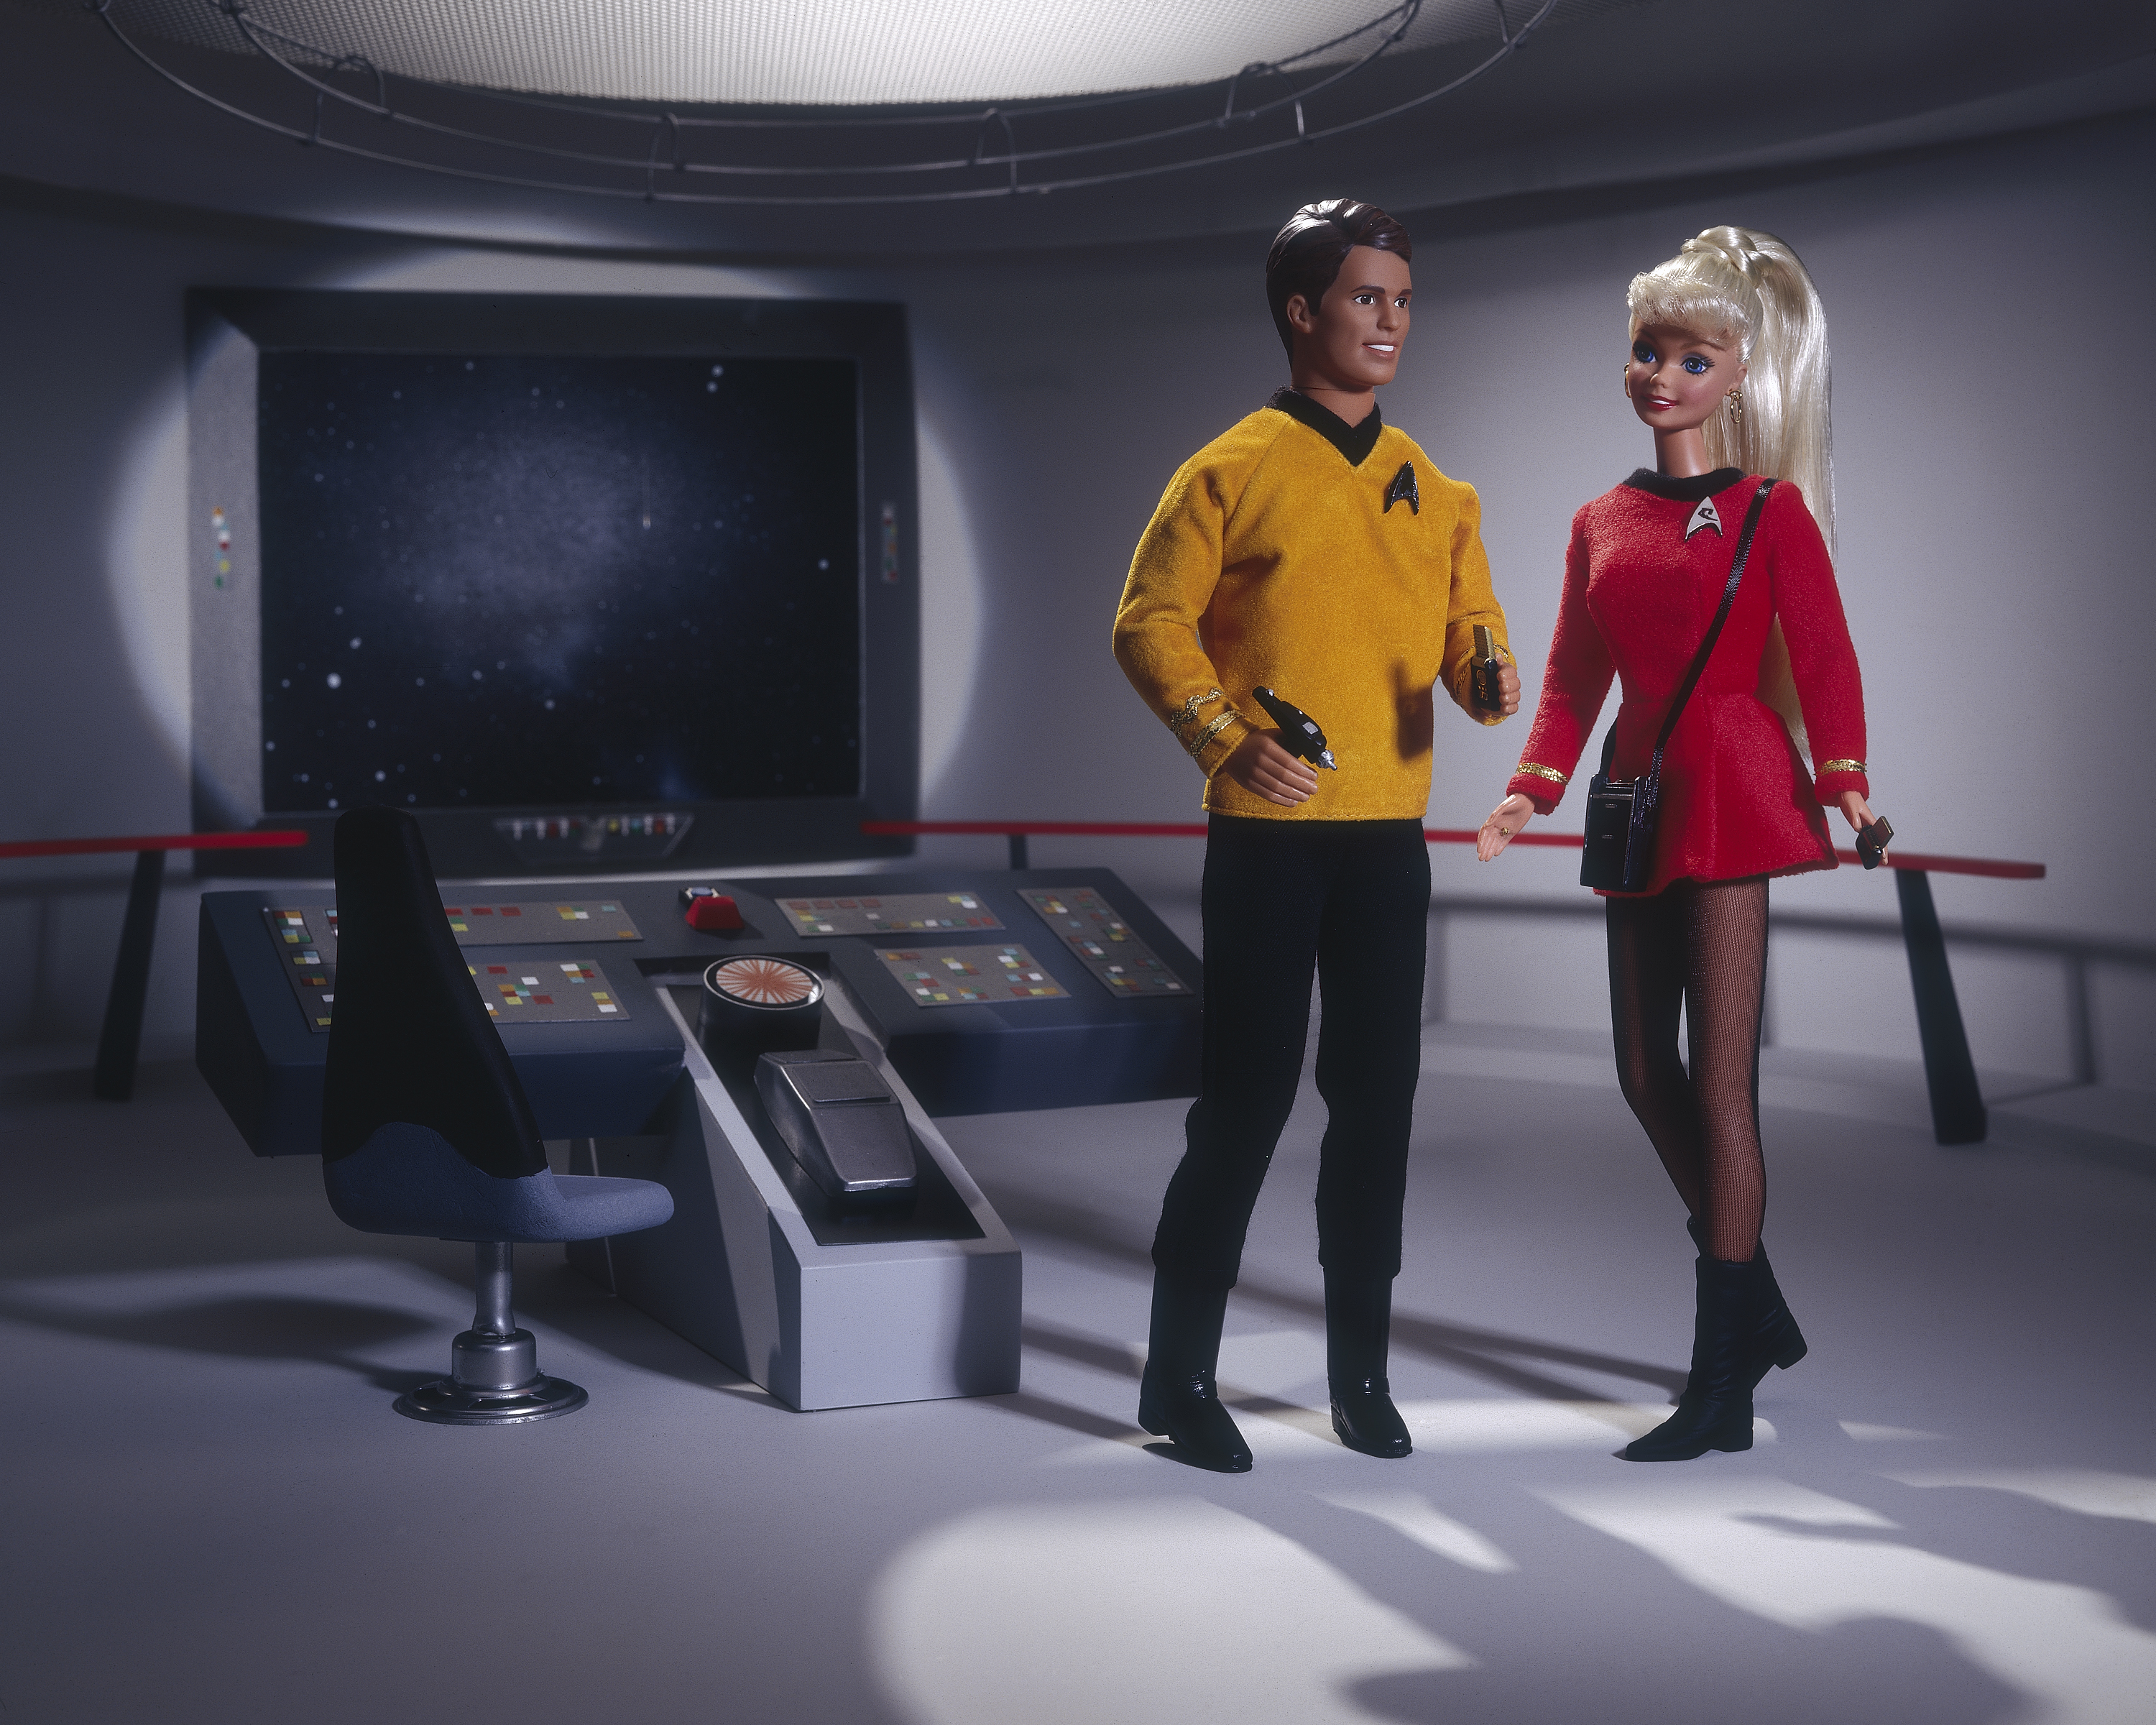 'Star Trek' Barbie and Ken (1996)